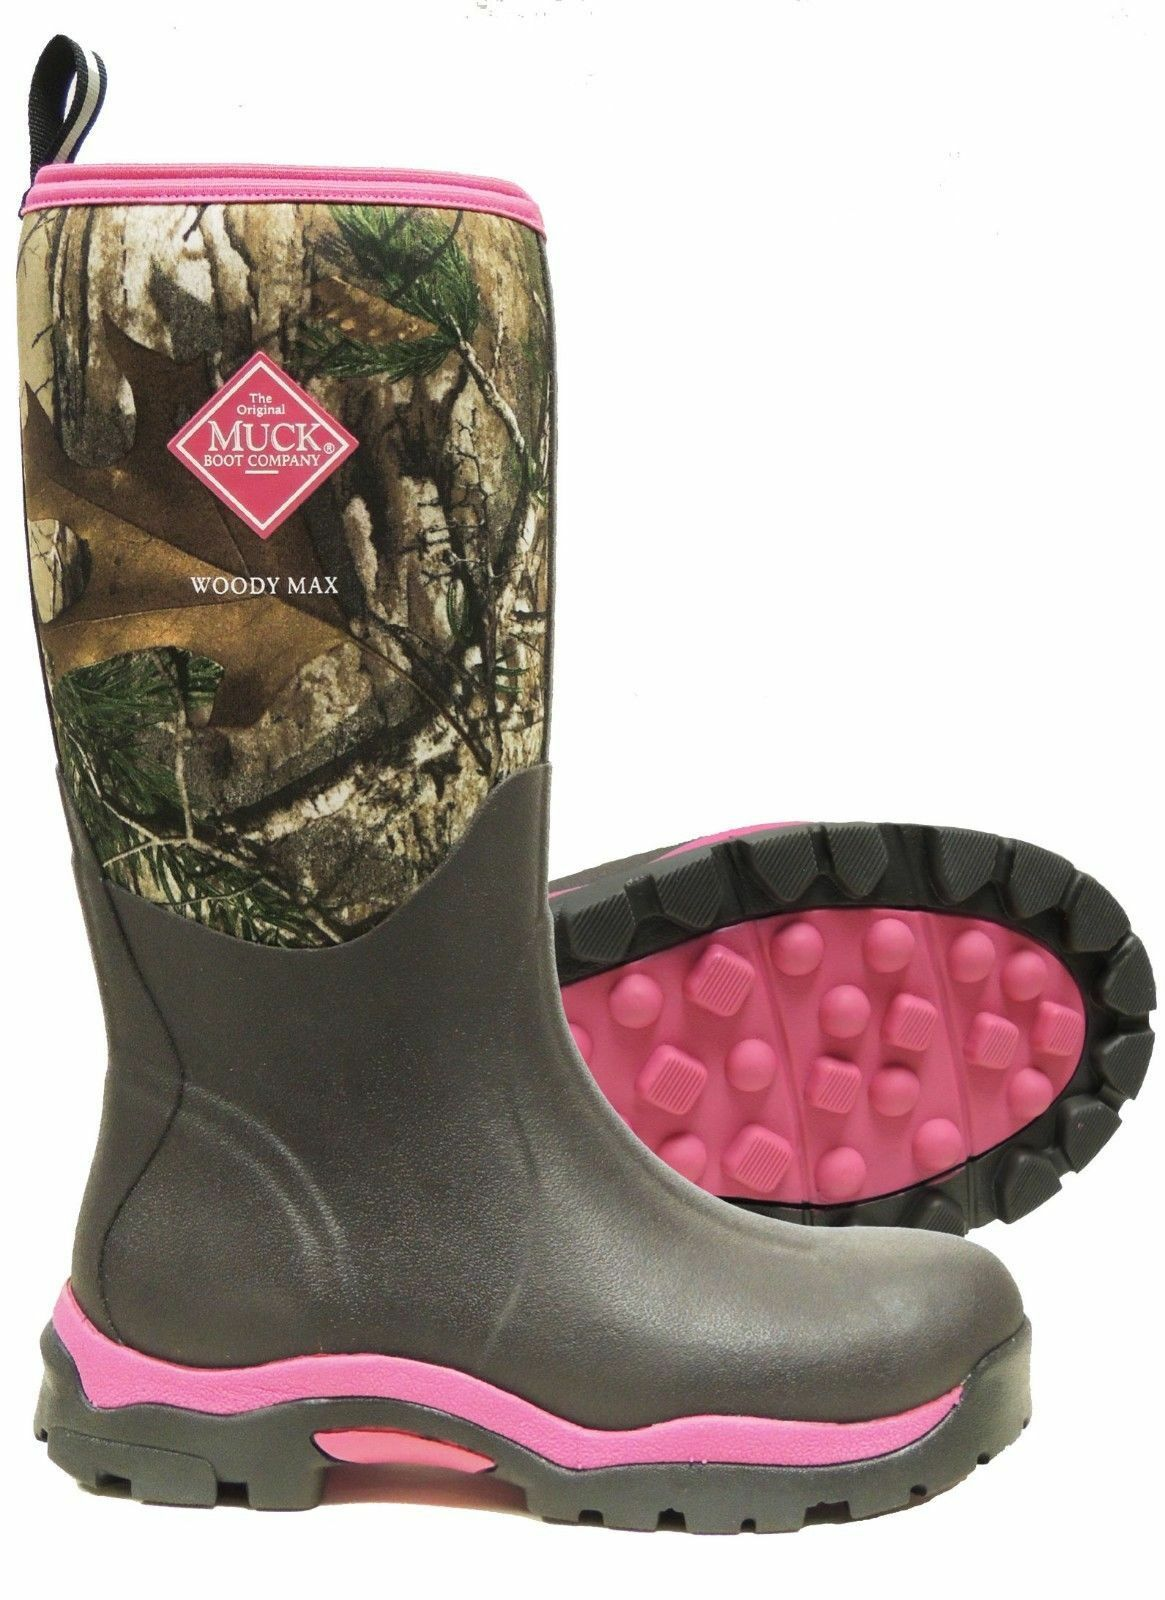 NEW Muck WDW-4RTX Woody MAX Pink Camo Women's Boots HUNT Size Sz 6,7,8,9,10+